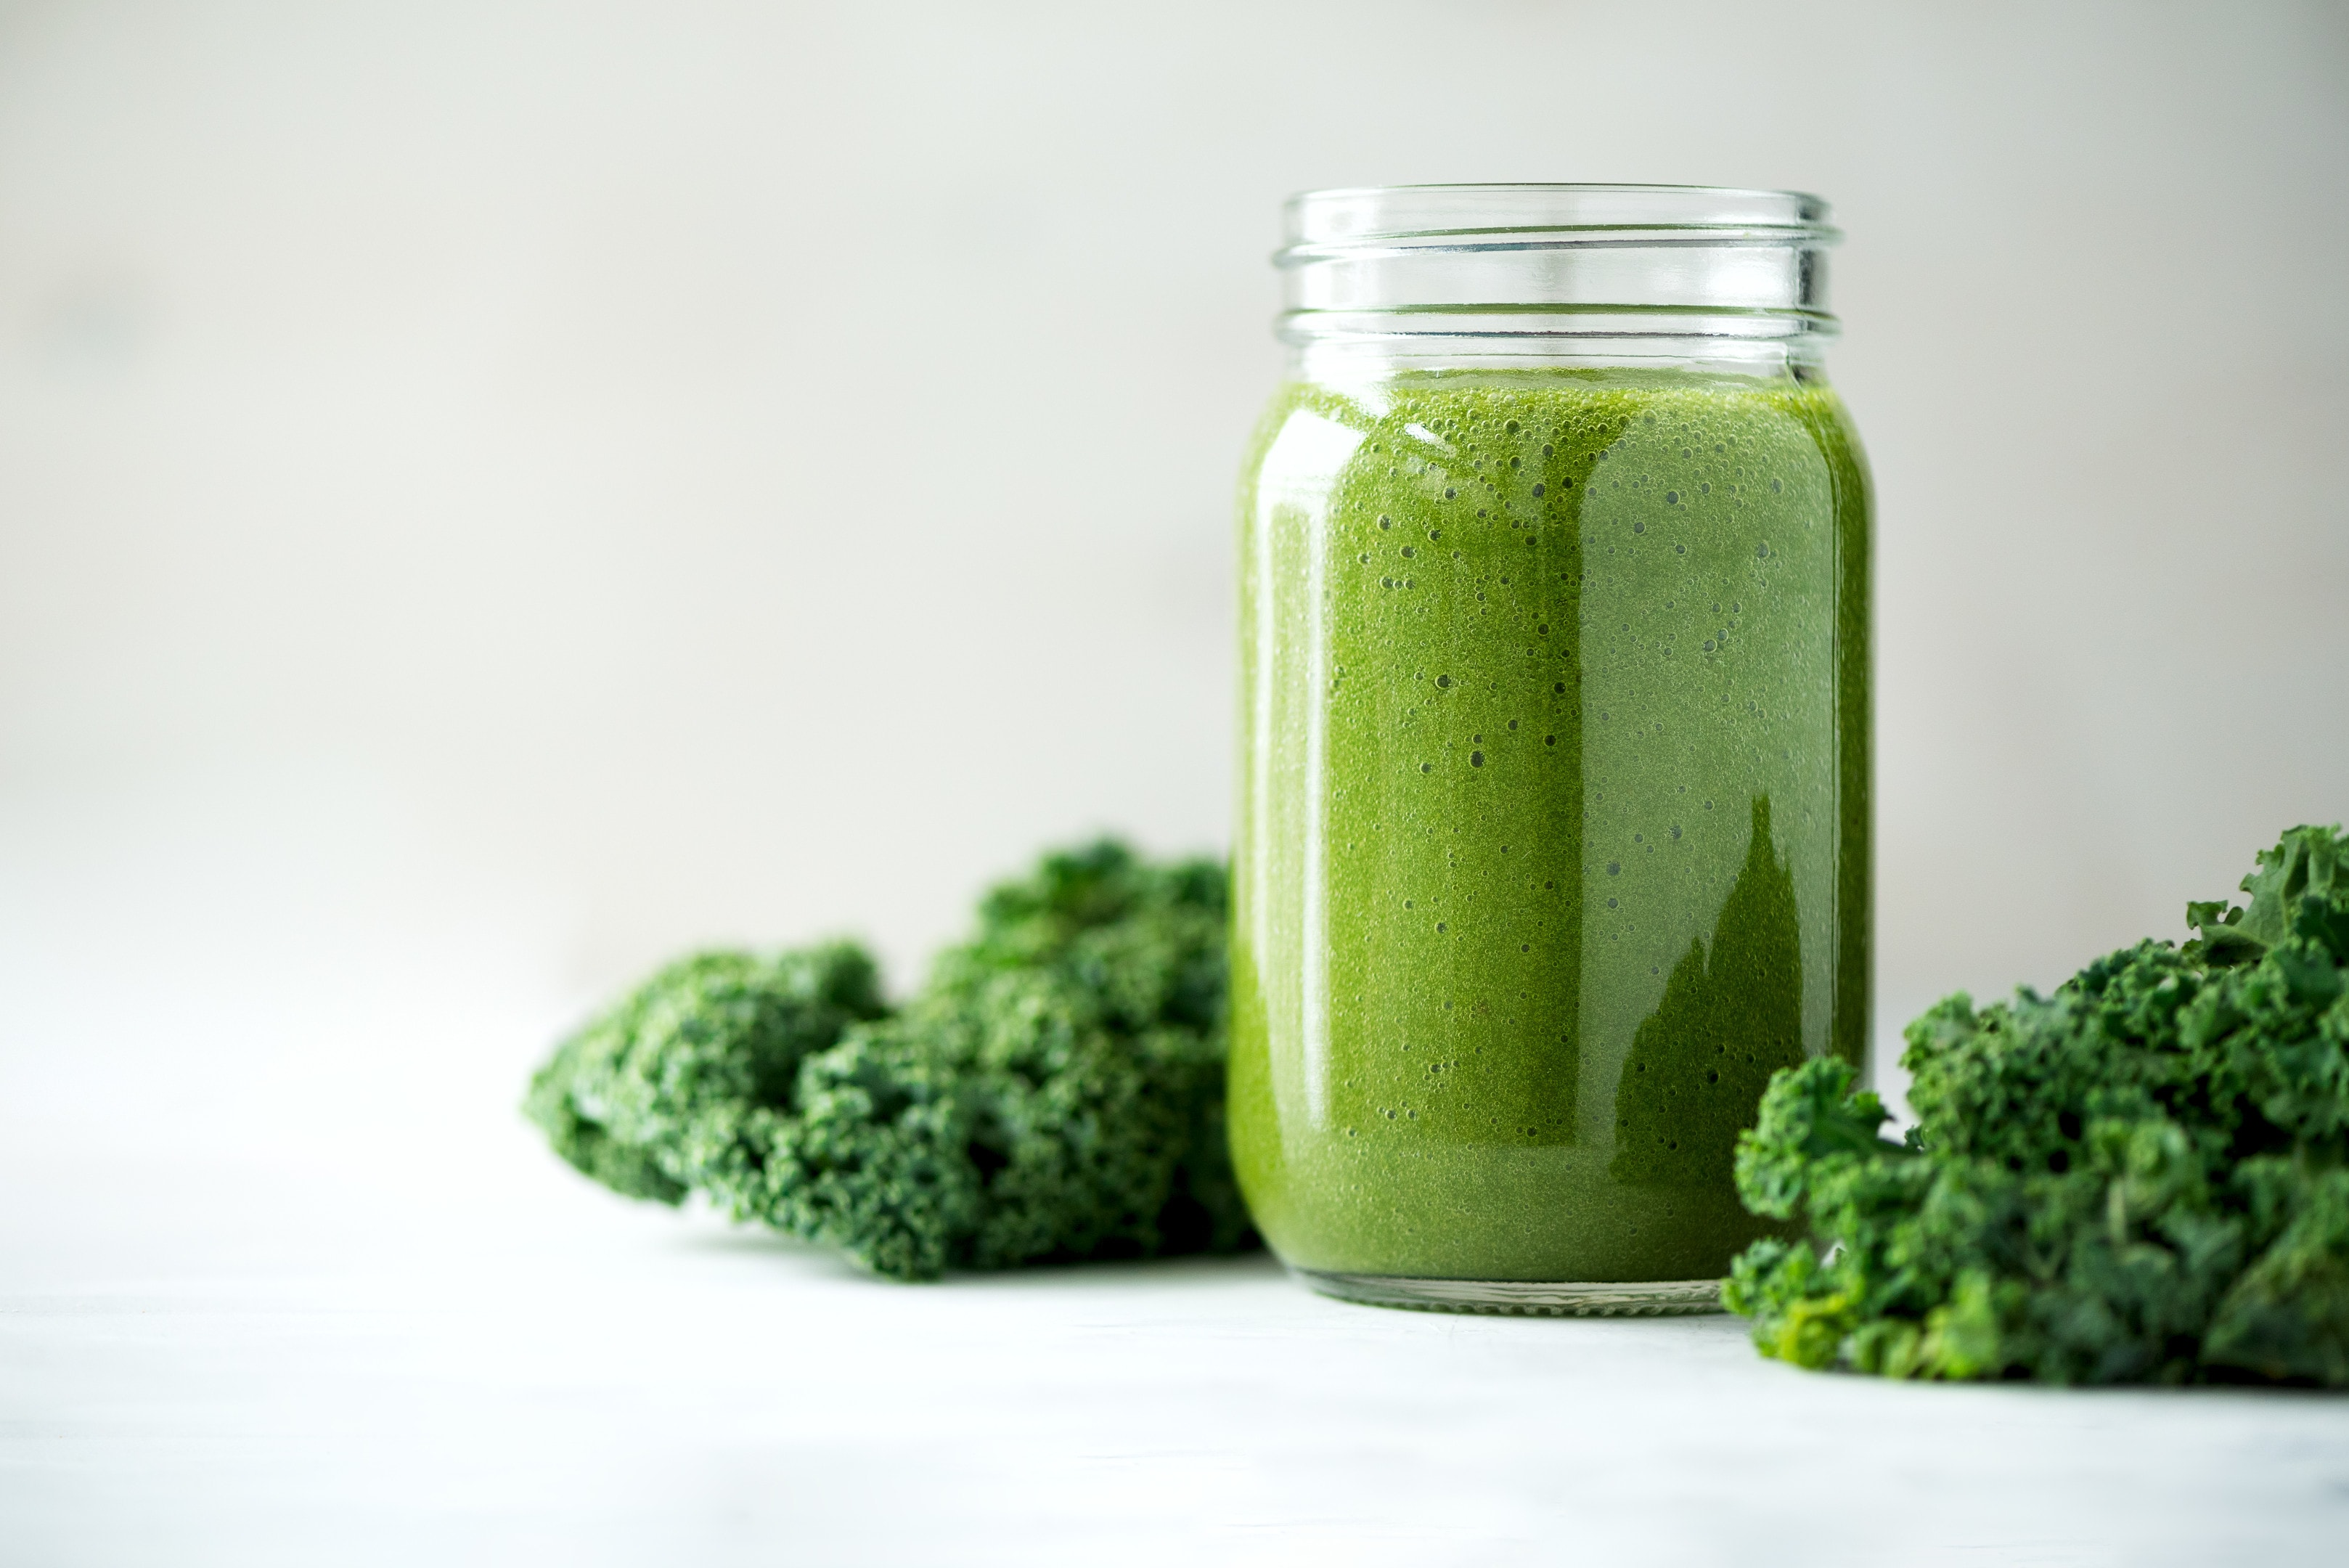 Glass jar with green smoothie of kale leaves lime apple kiwi grapes banana avocado lettuce